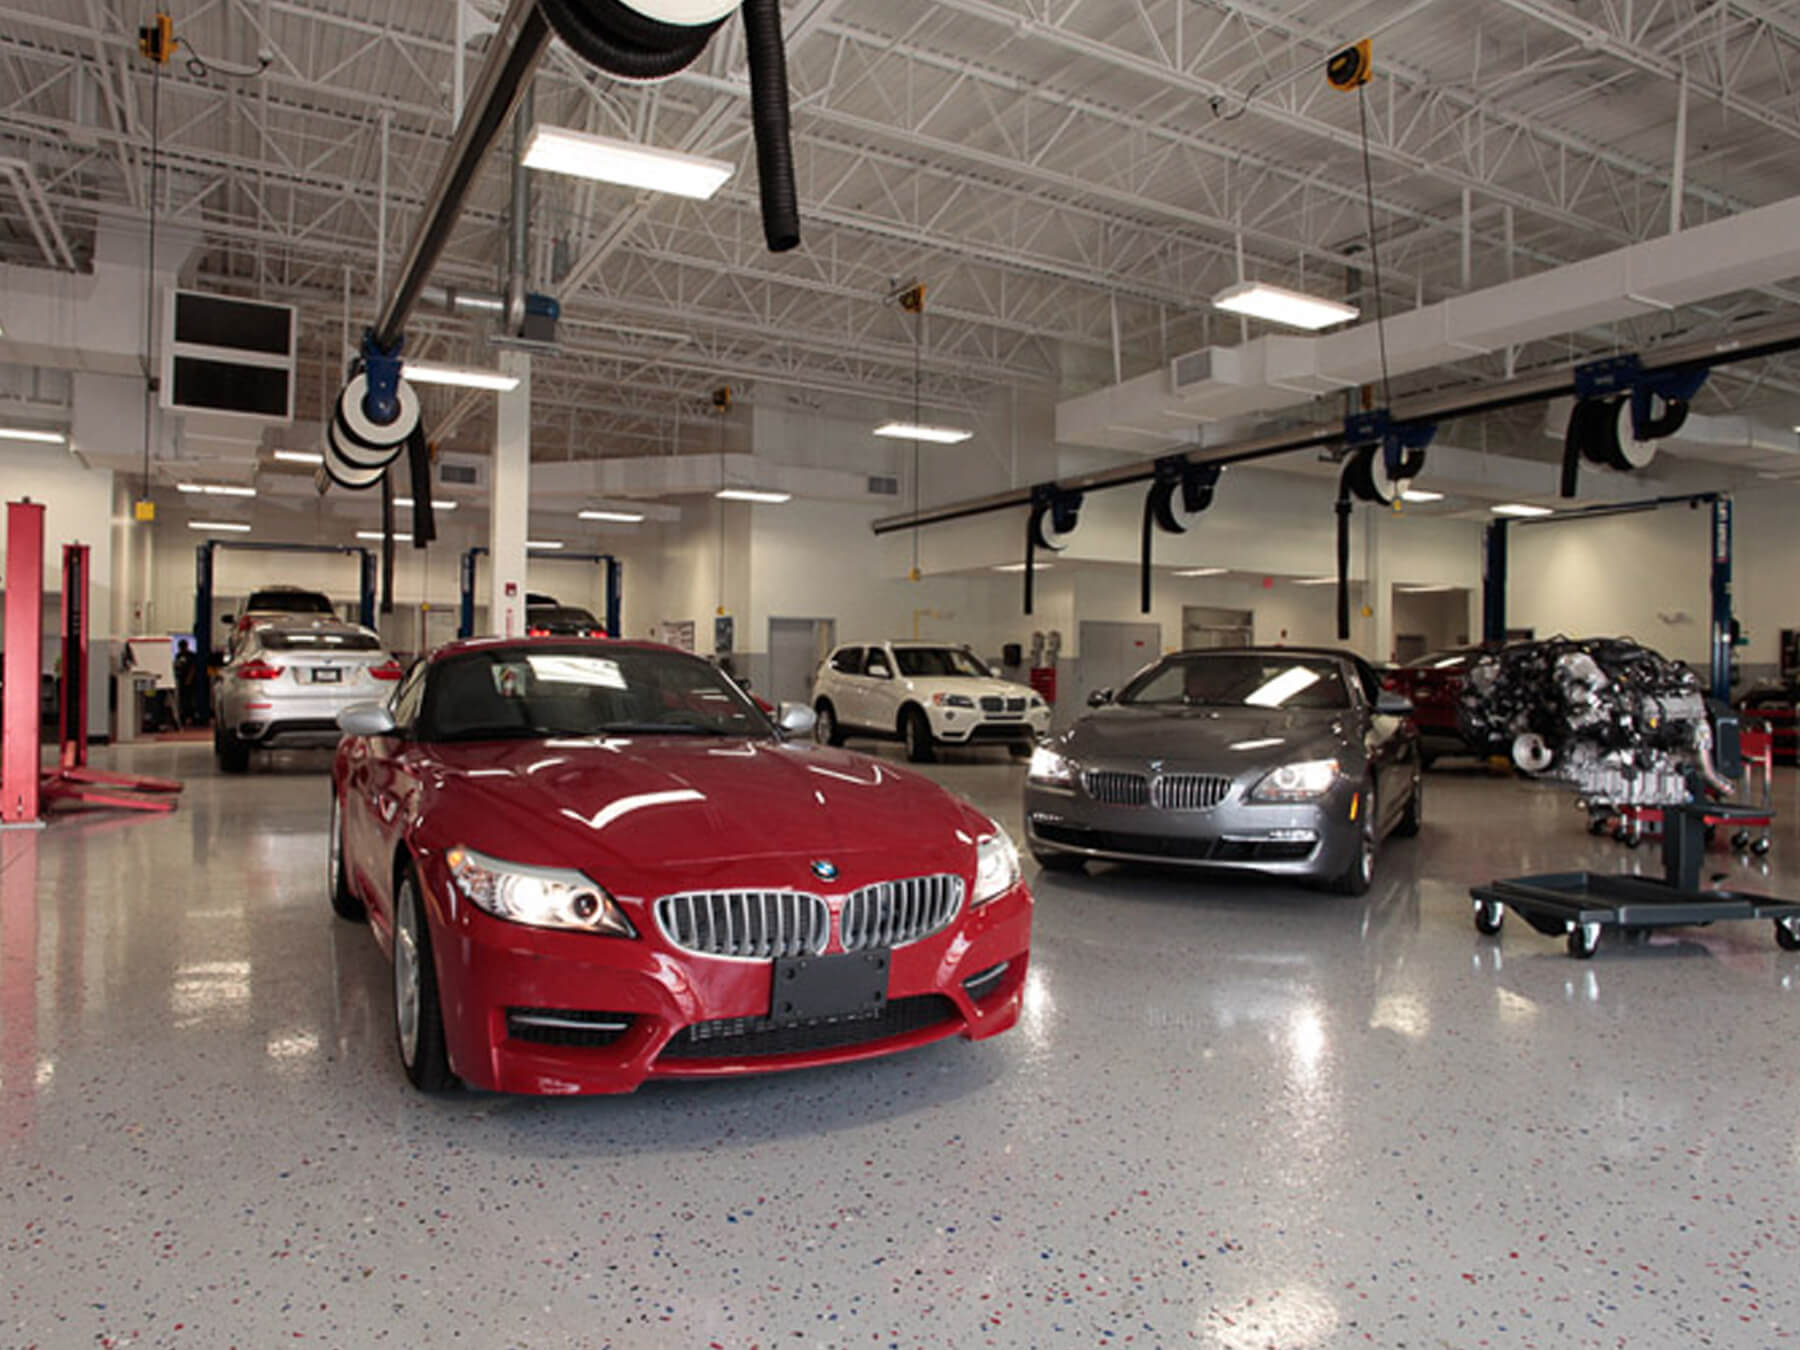 Red and grey BMW car in the BMW lab